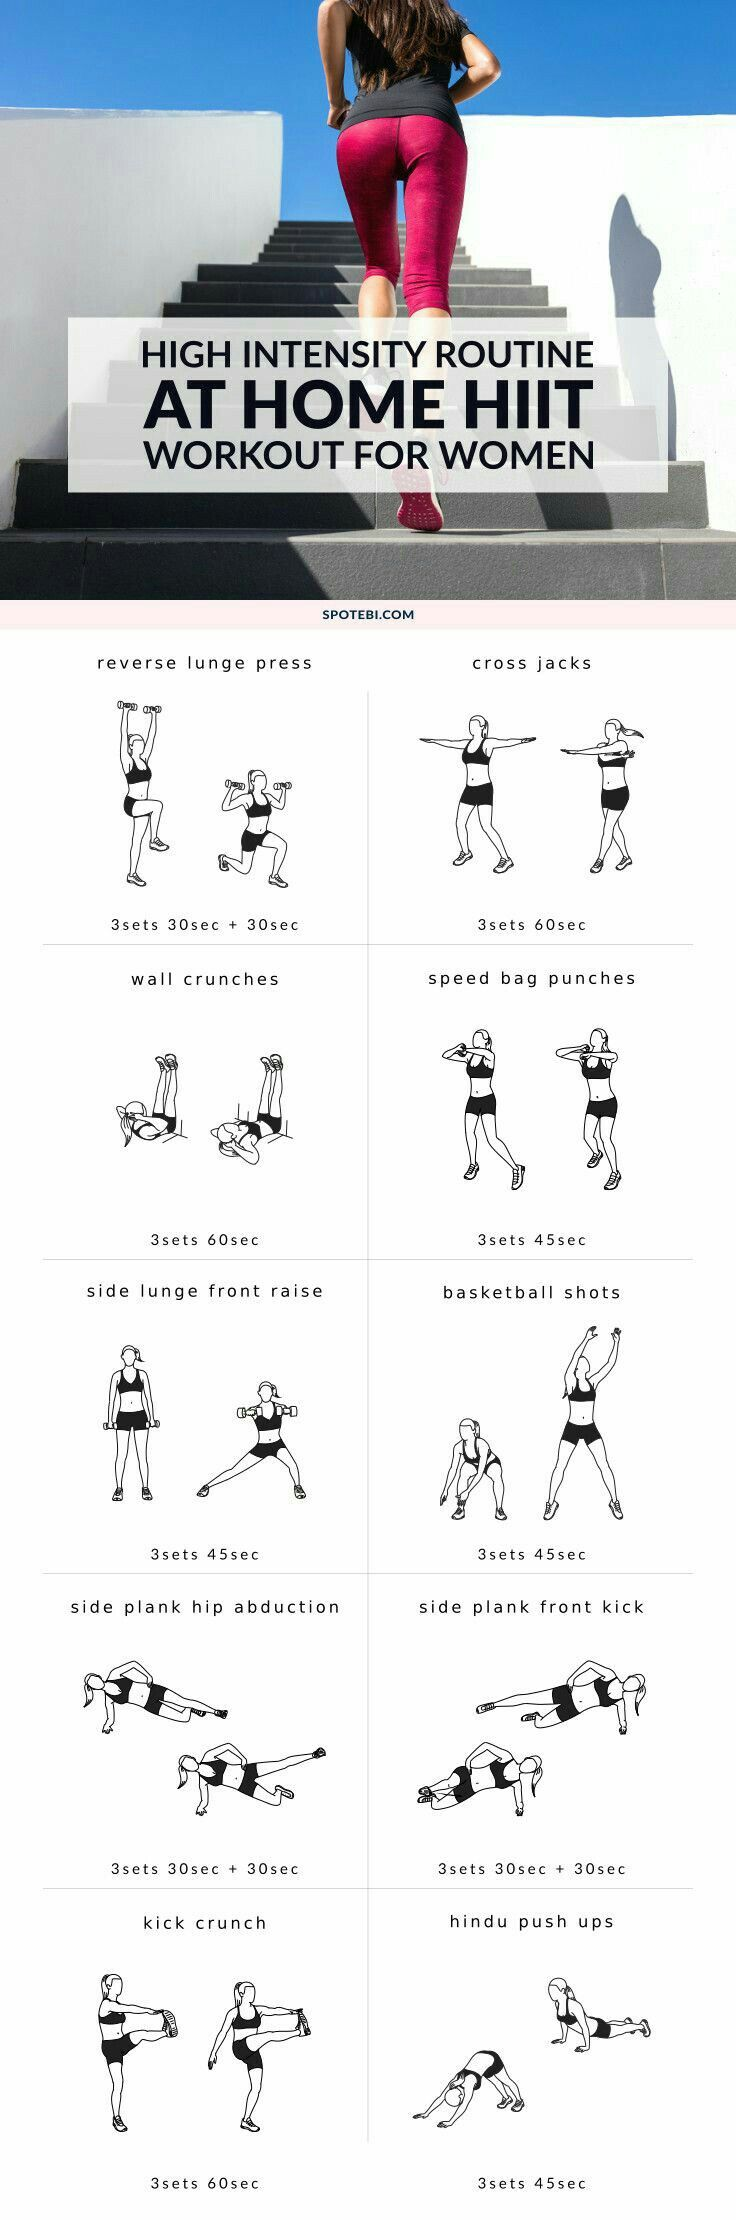 HIIT workouts are not only more effective then cardio...but you ALSO get more bang for your buck with time.